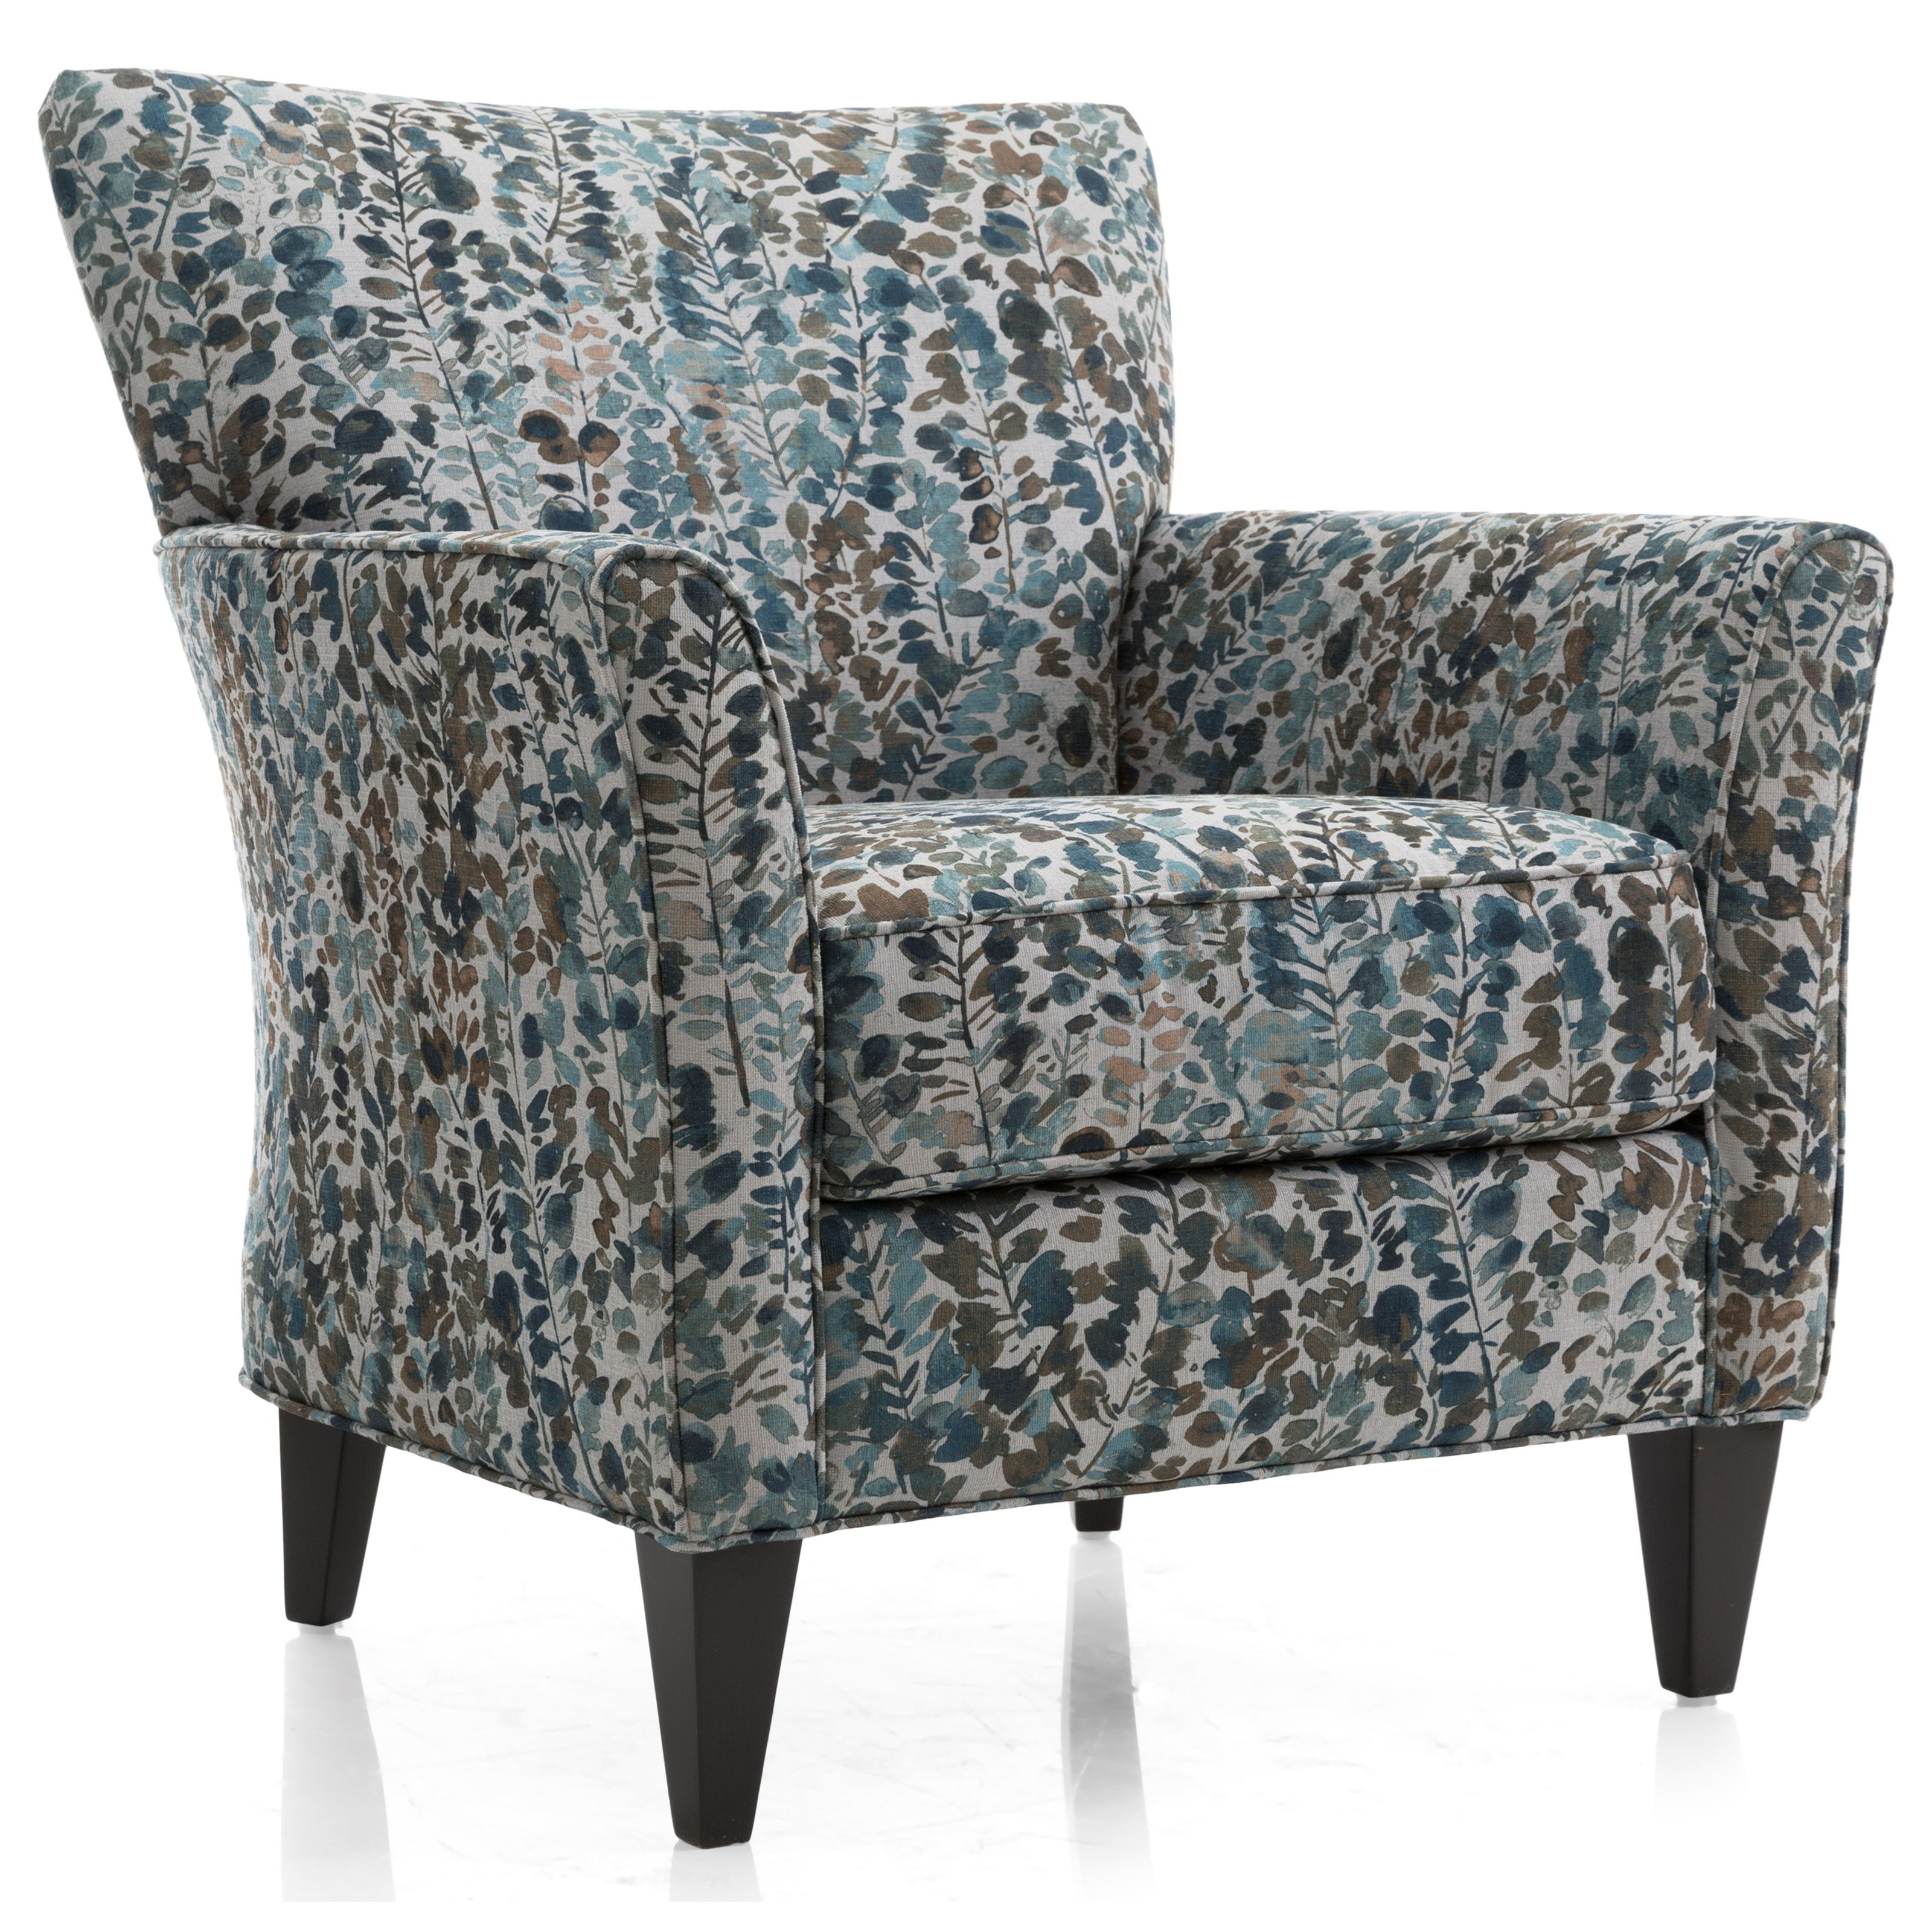 2668 Chair by Decor-Rest at Wayside Furniture